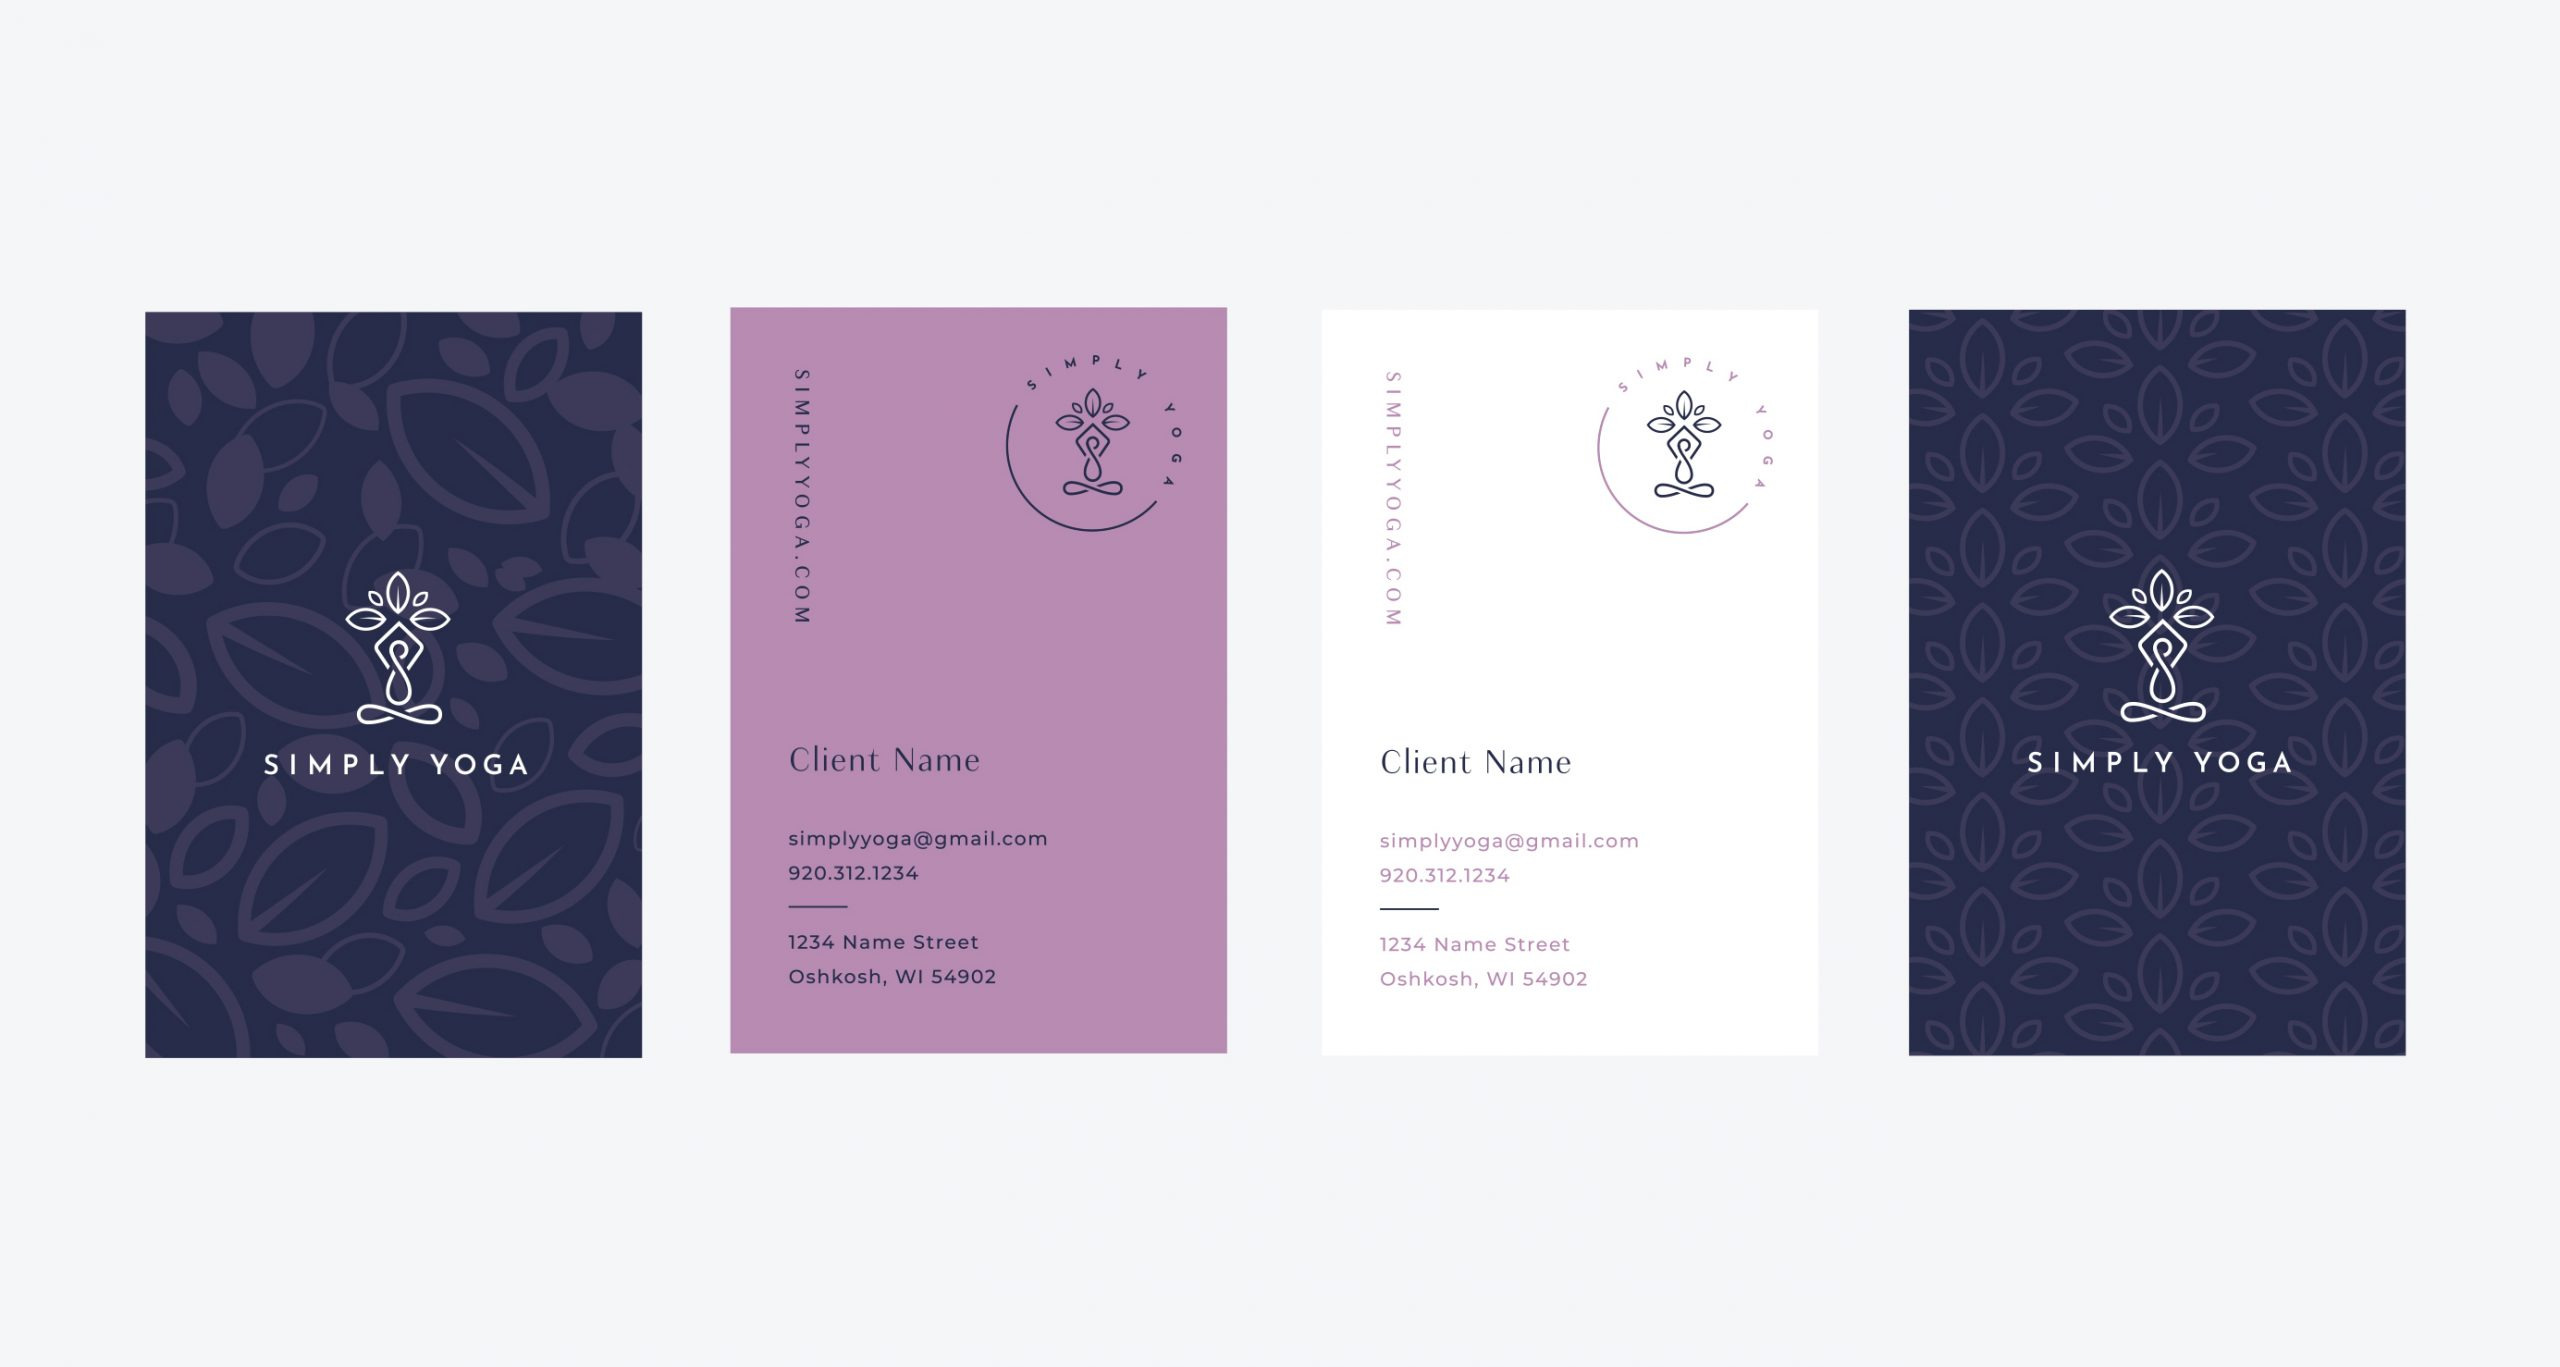 Simply Yoga businesscard